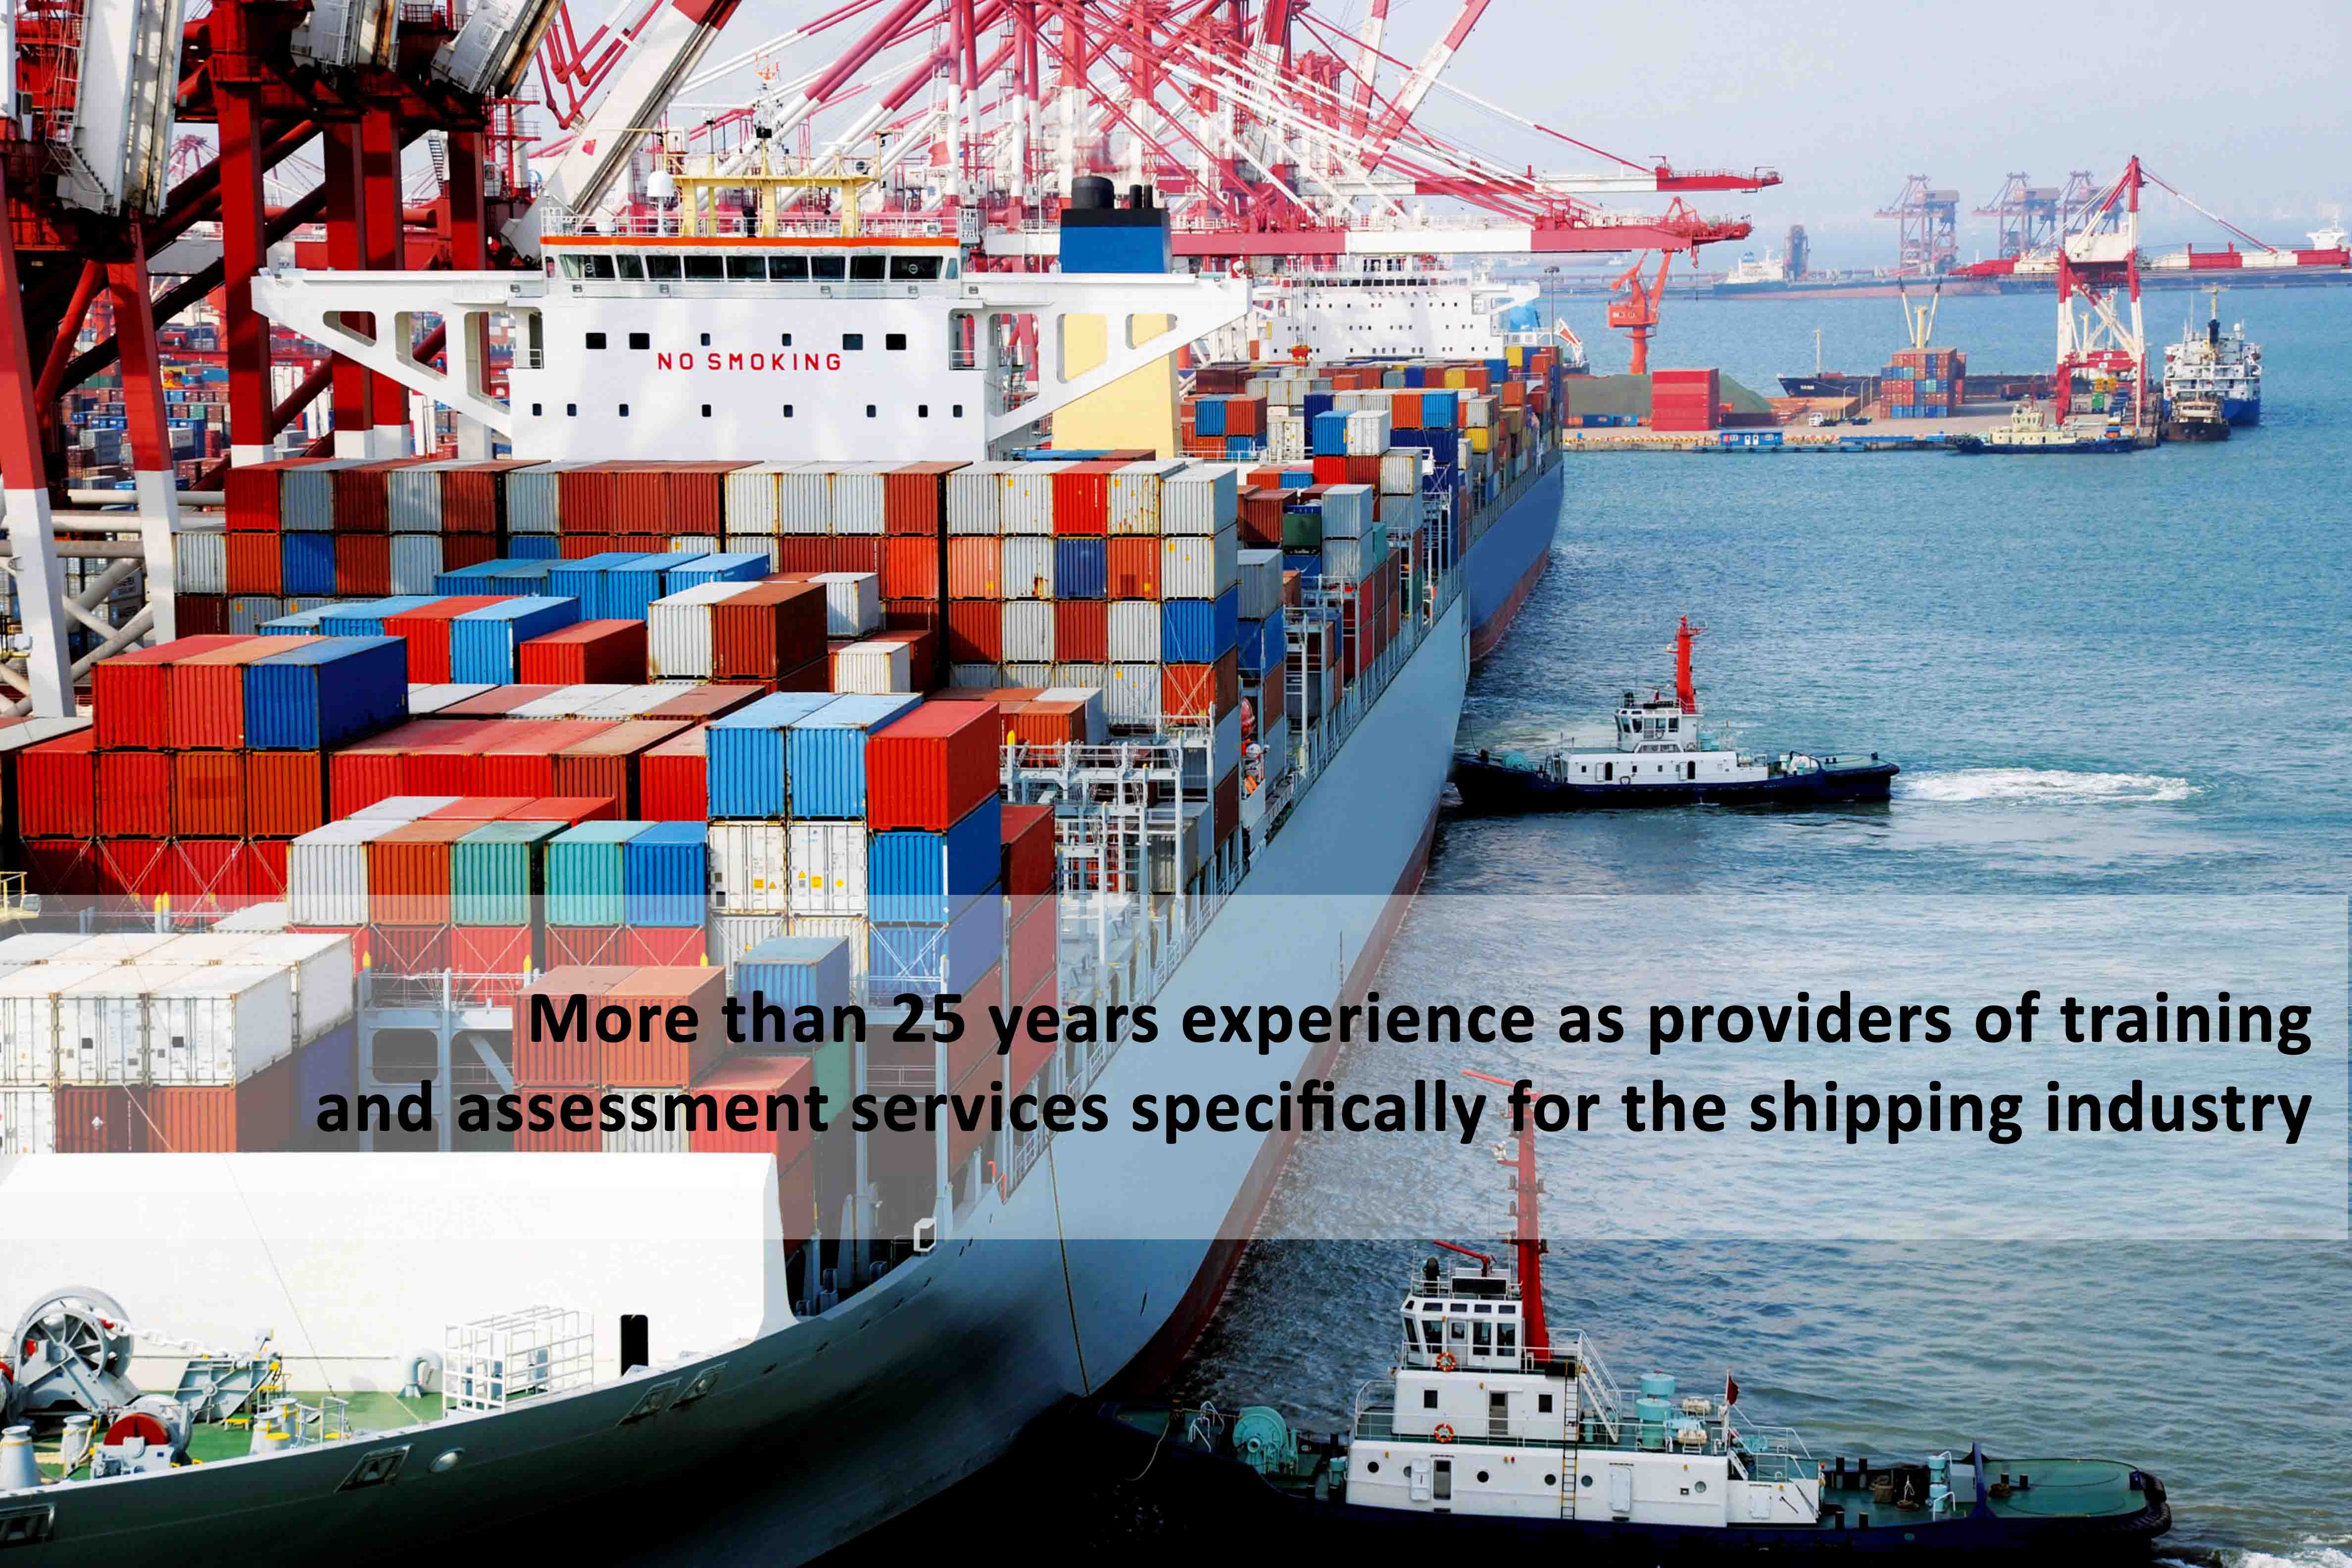 IDESS IT has more than 25 years experience as providers of training and assessment services specifically for the shipping industry